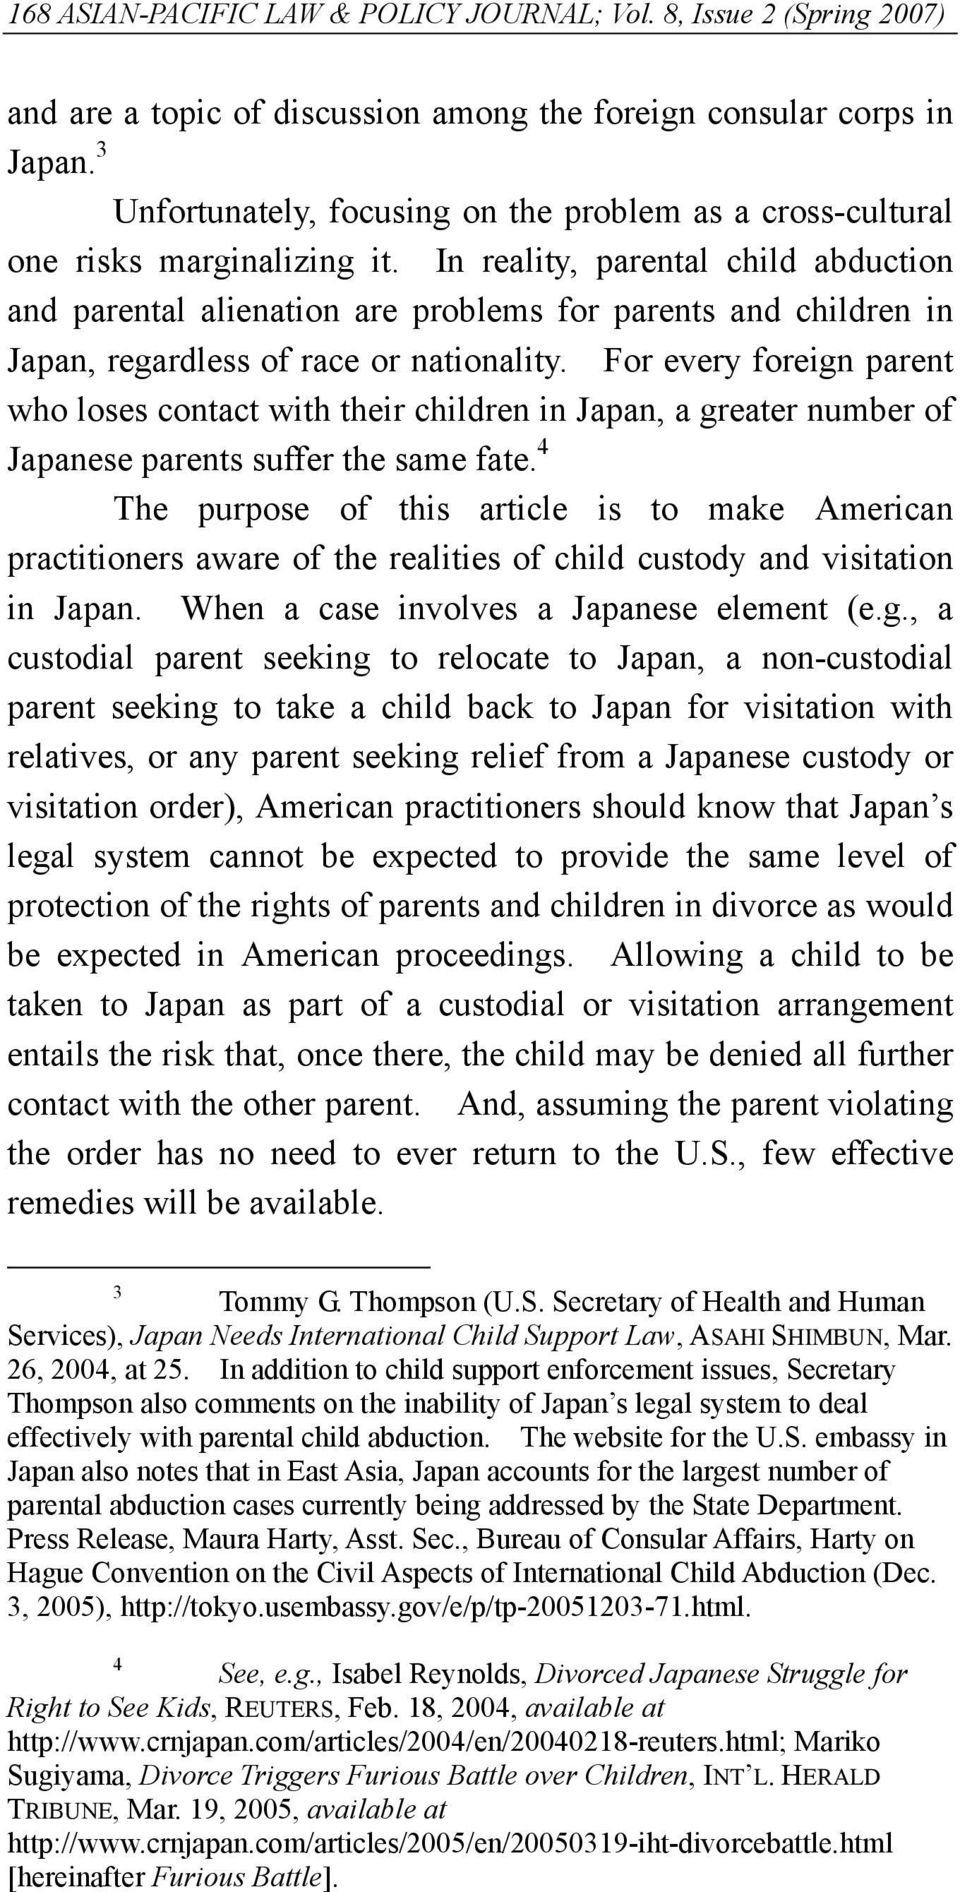 In reality, parental child abduction and parental alienation are problems for parents and children in Japan, regardless of race or nationality.